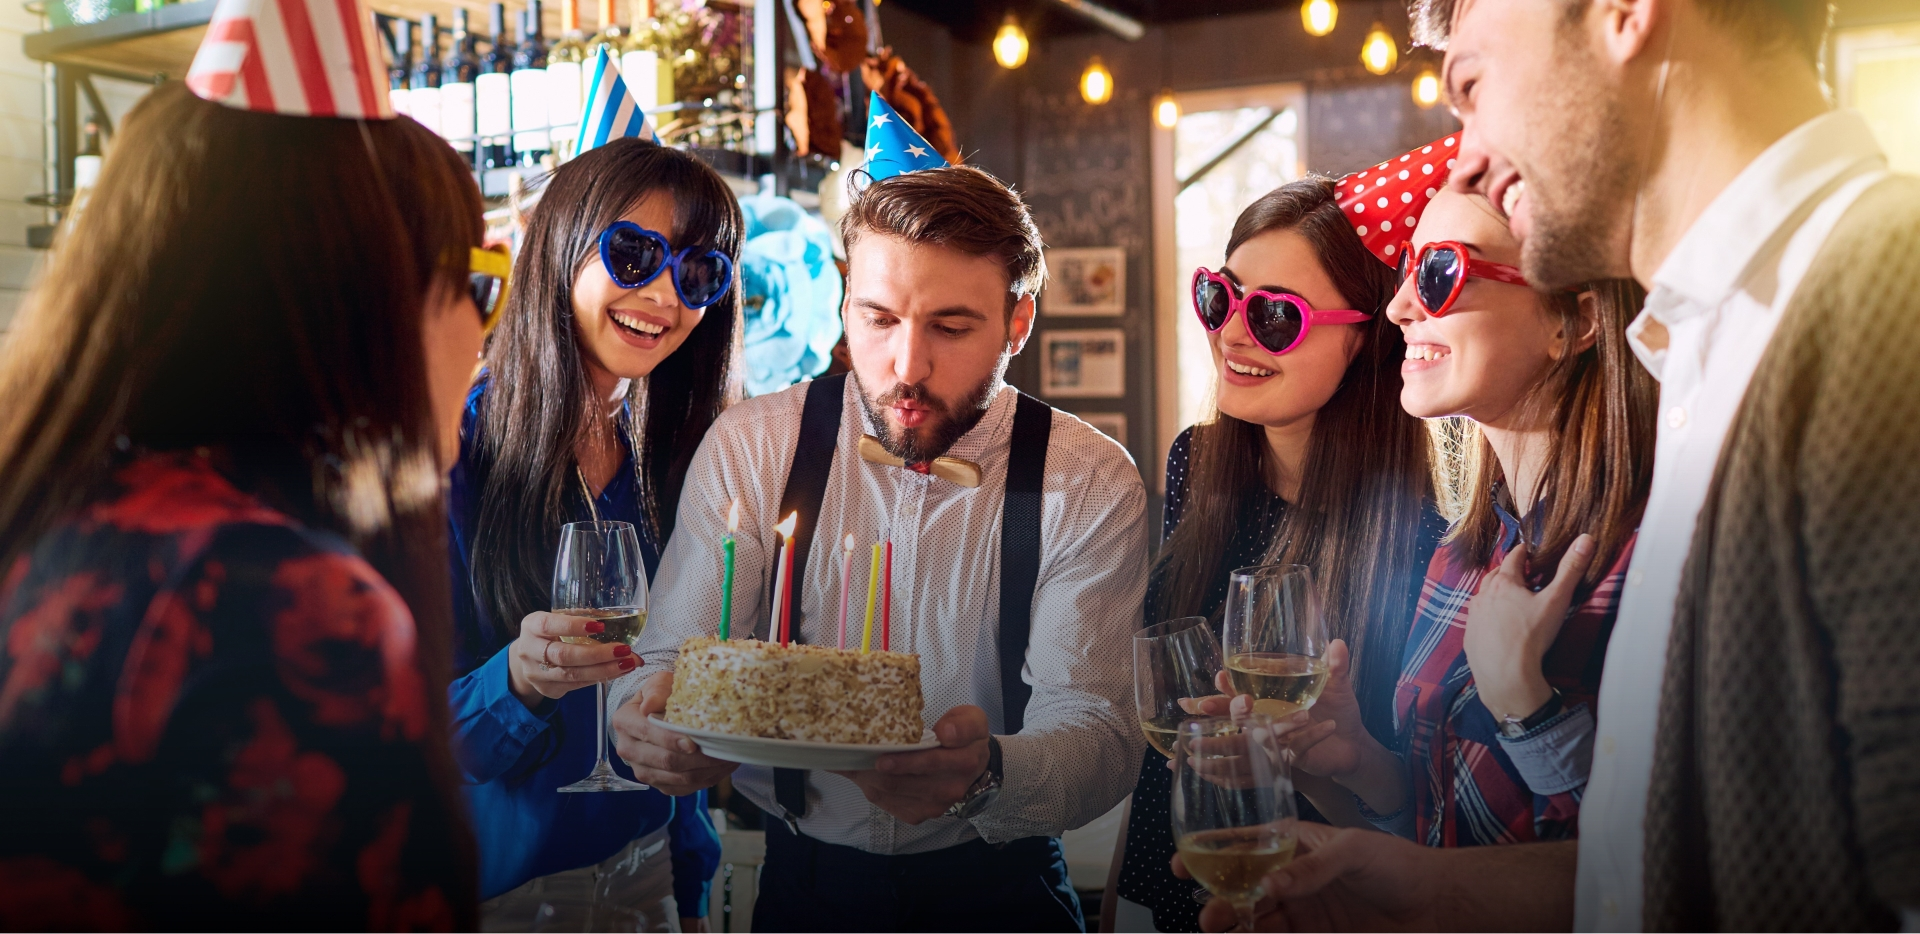 millennial man blows out candles on birthday cake surrounded by friends wearing party favors